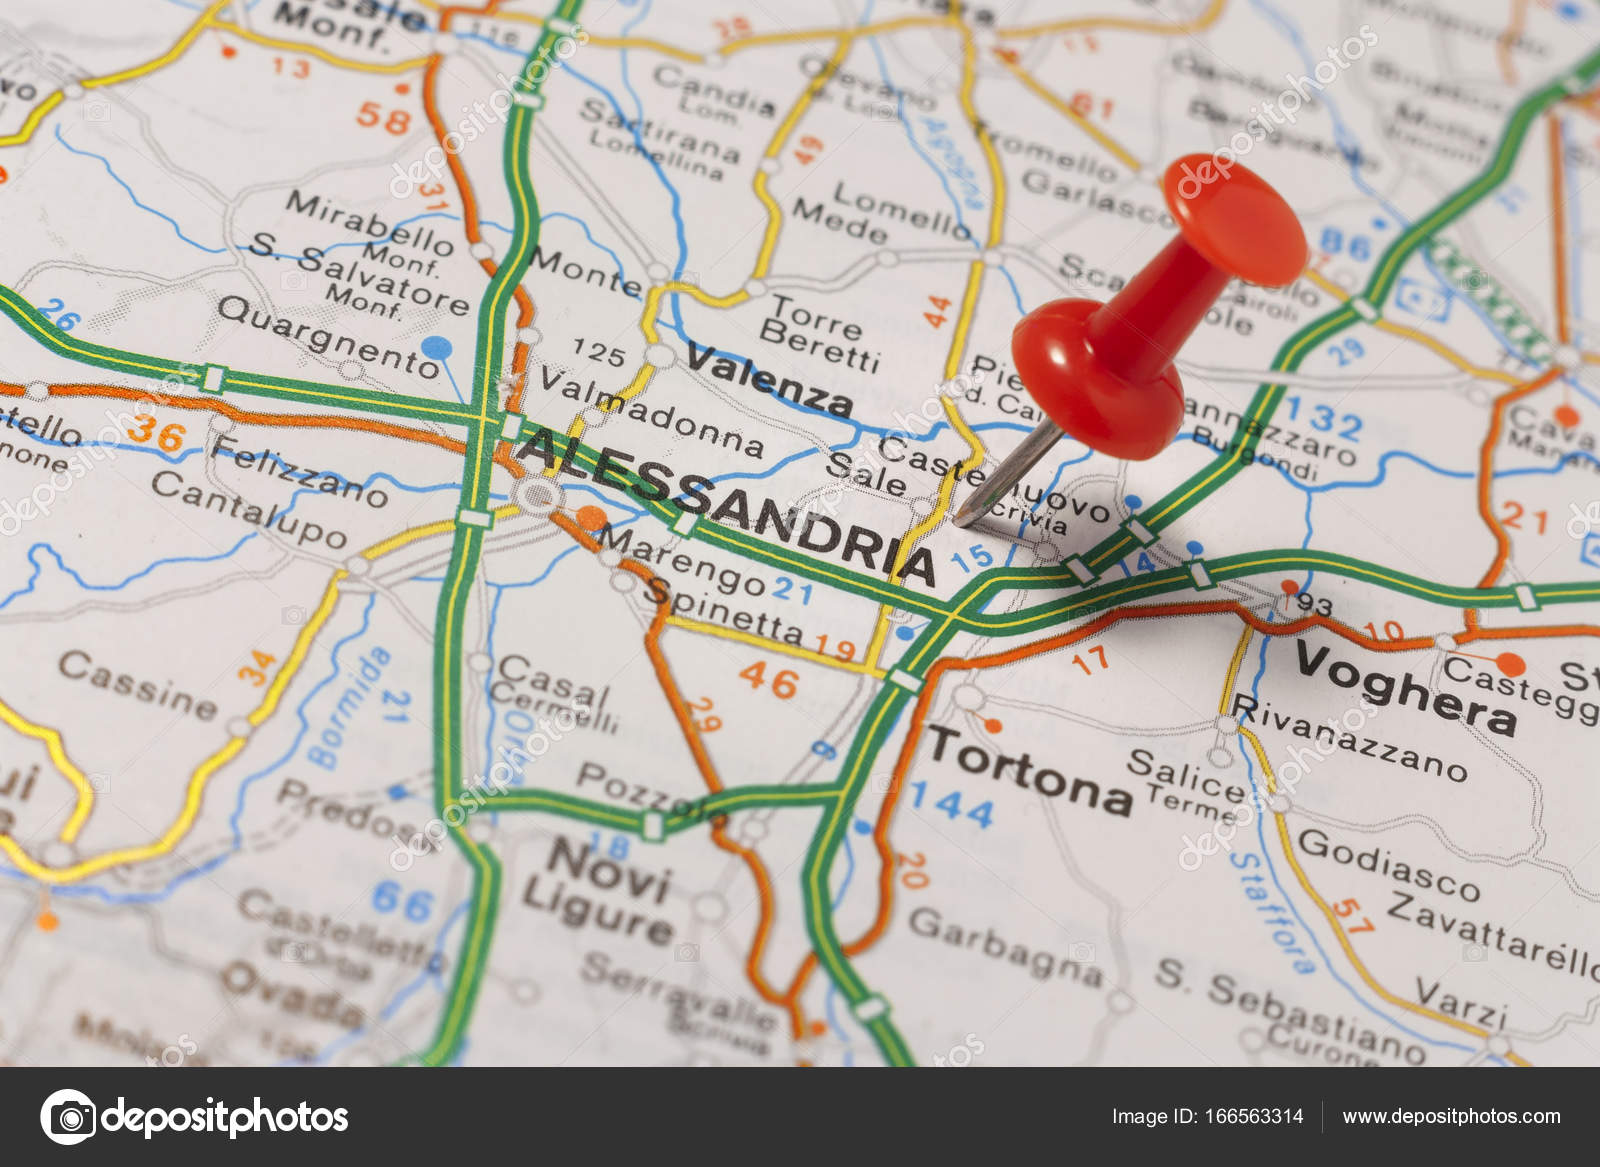 Alessandria pinned on a map of Italy Stock Photo maior 166563314